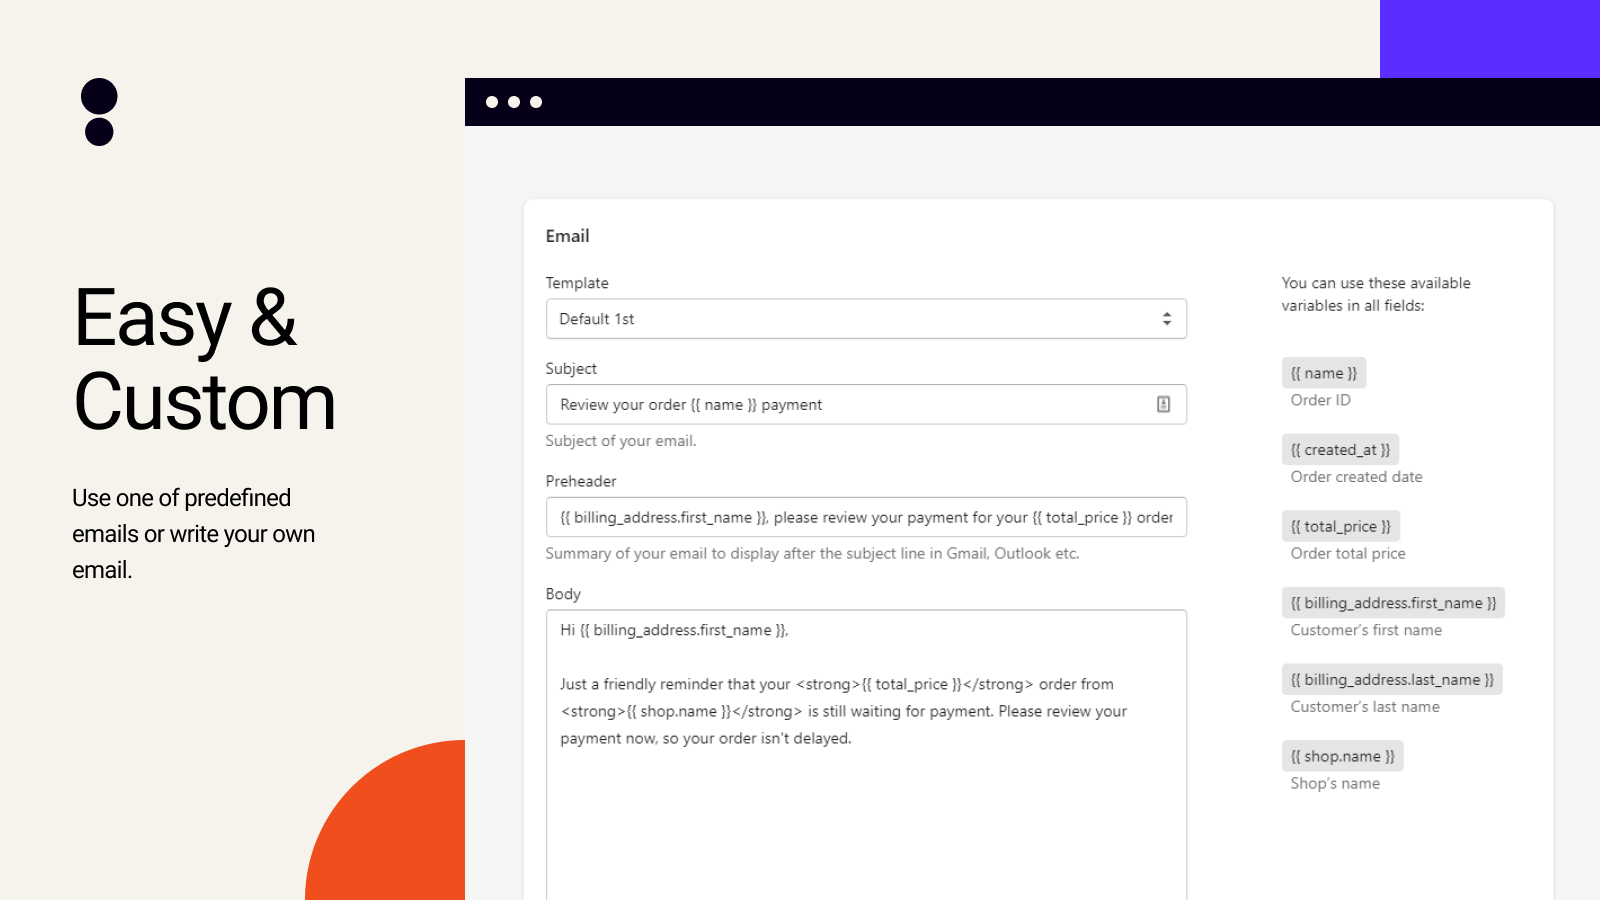 Email template editing